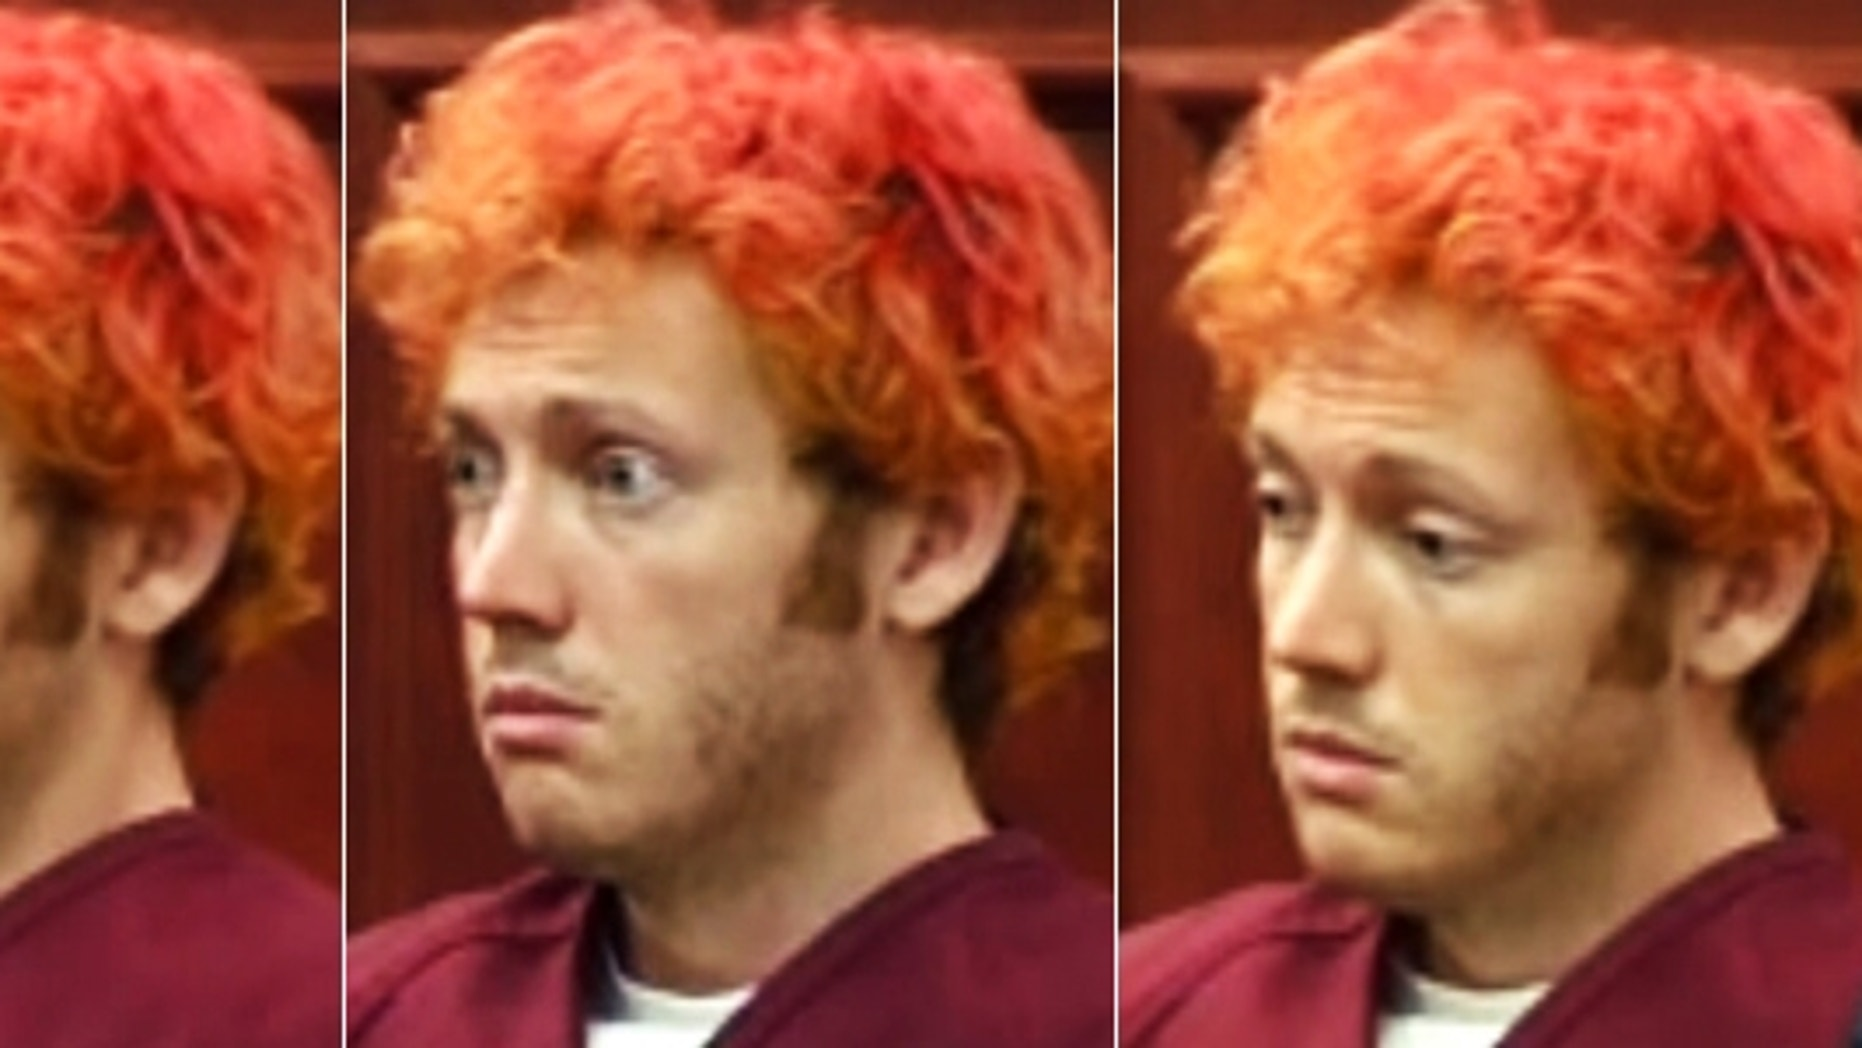 James Holmes sat subdued in court at his first appearance, declining to speak and looking dazed and confused. The appearance was short, and Holmes was silent as he was formally read his rights.